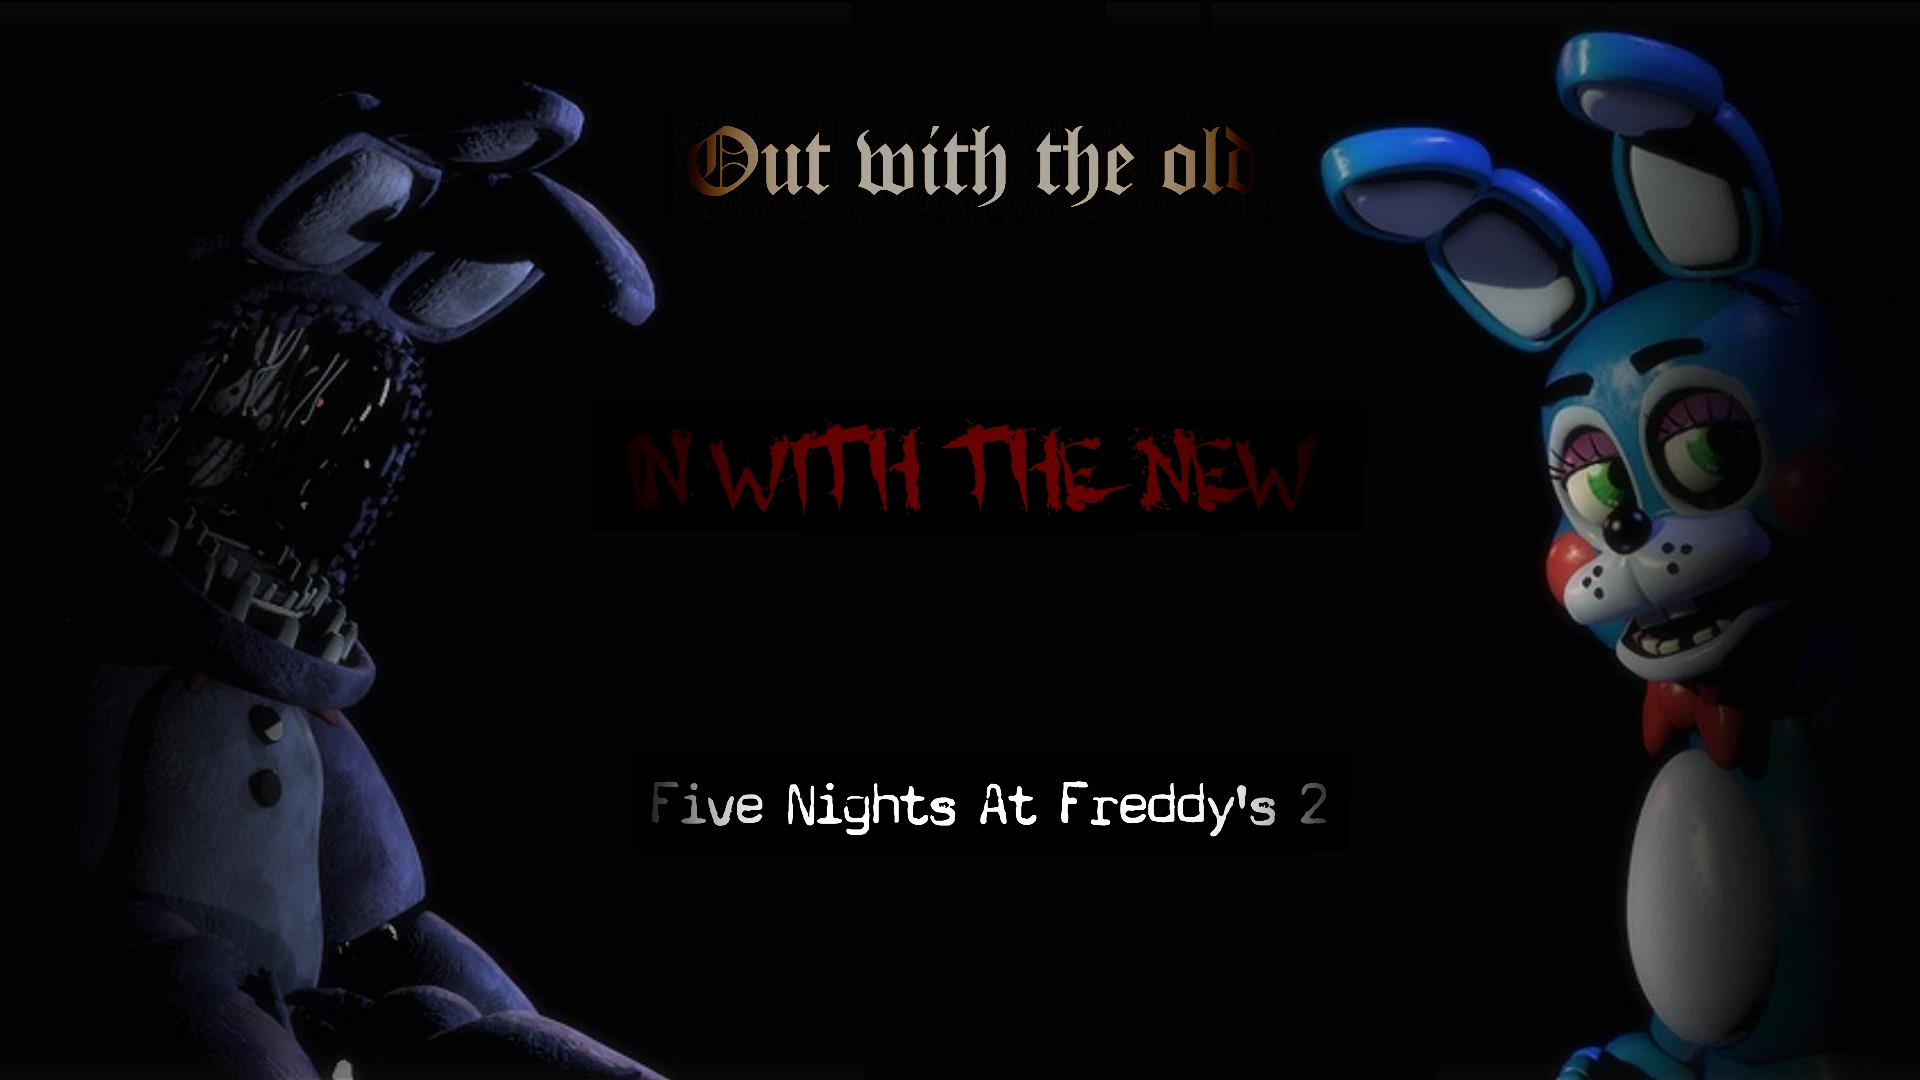 Five nights at freddys 2 official poster 1 by professoradagio